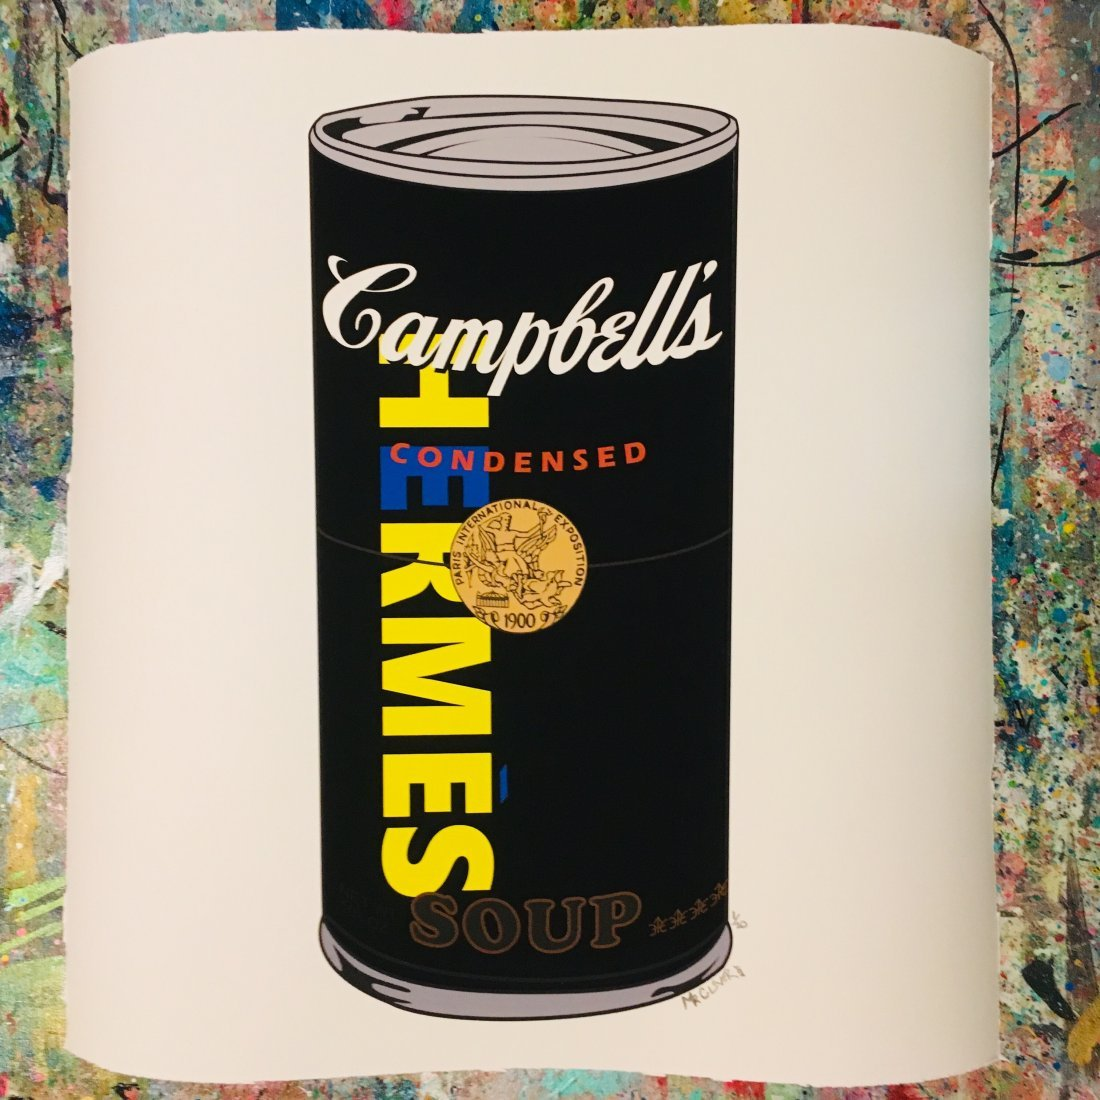 Hermes Luxury Campbells Soup Can Print by Mr Clever Art